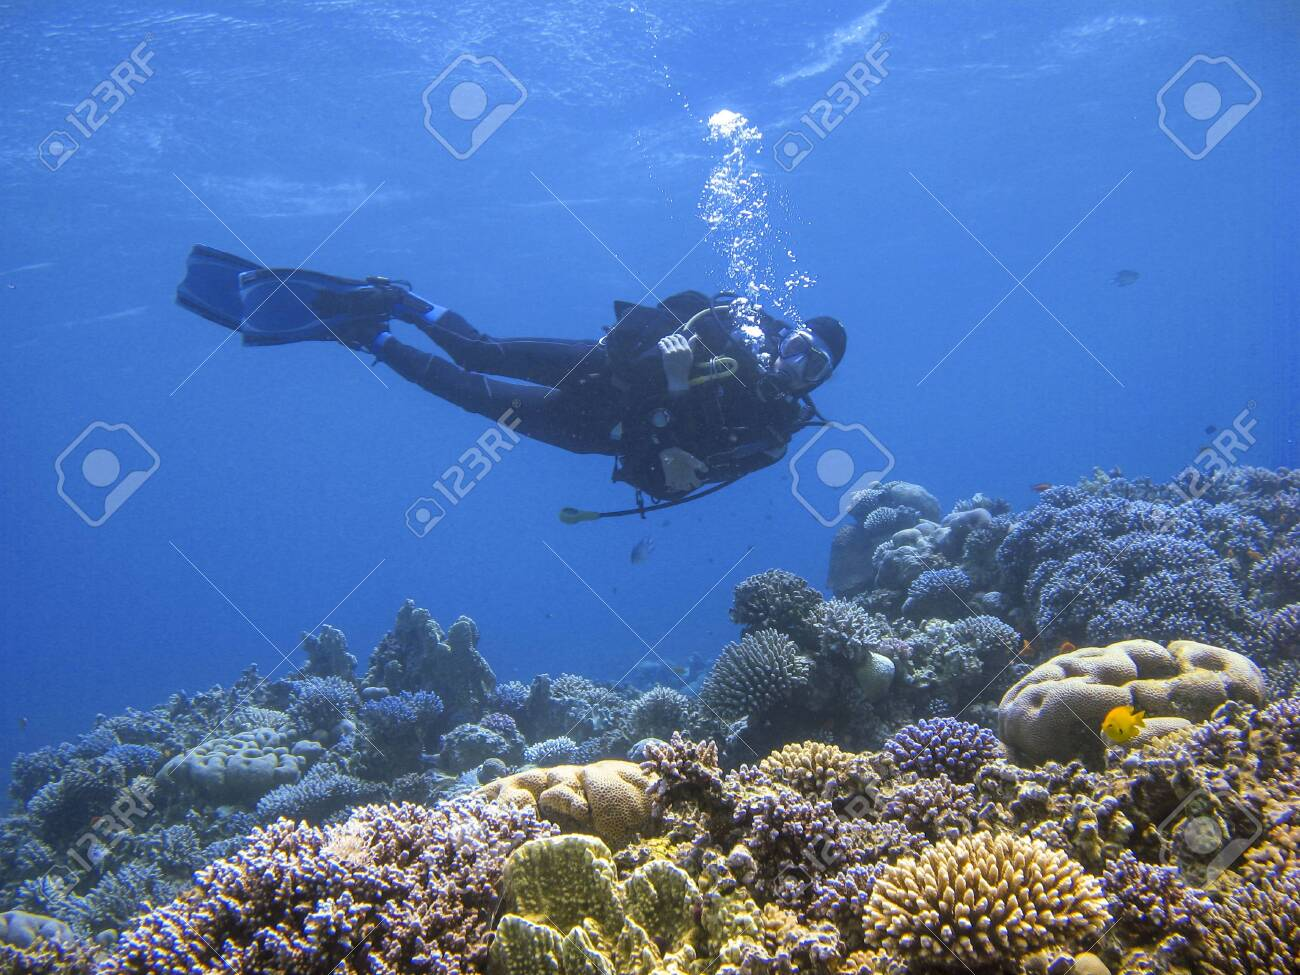 Underwater photography of a scuba diver swimming above the coral reef at dive site Ras Abu Galum in Dahab, Egypt. - 124329146